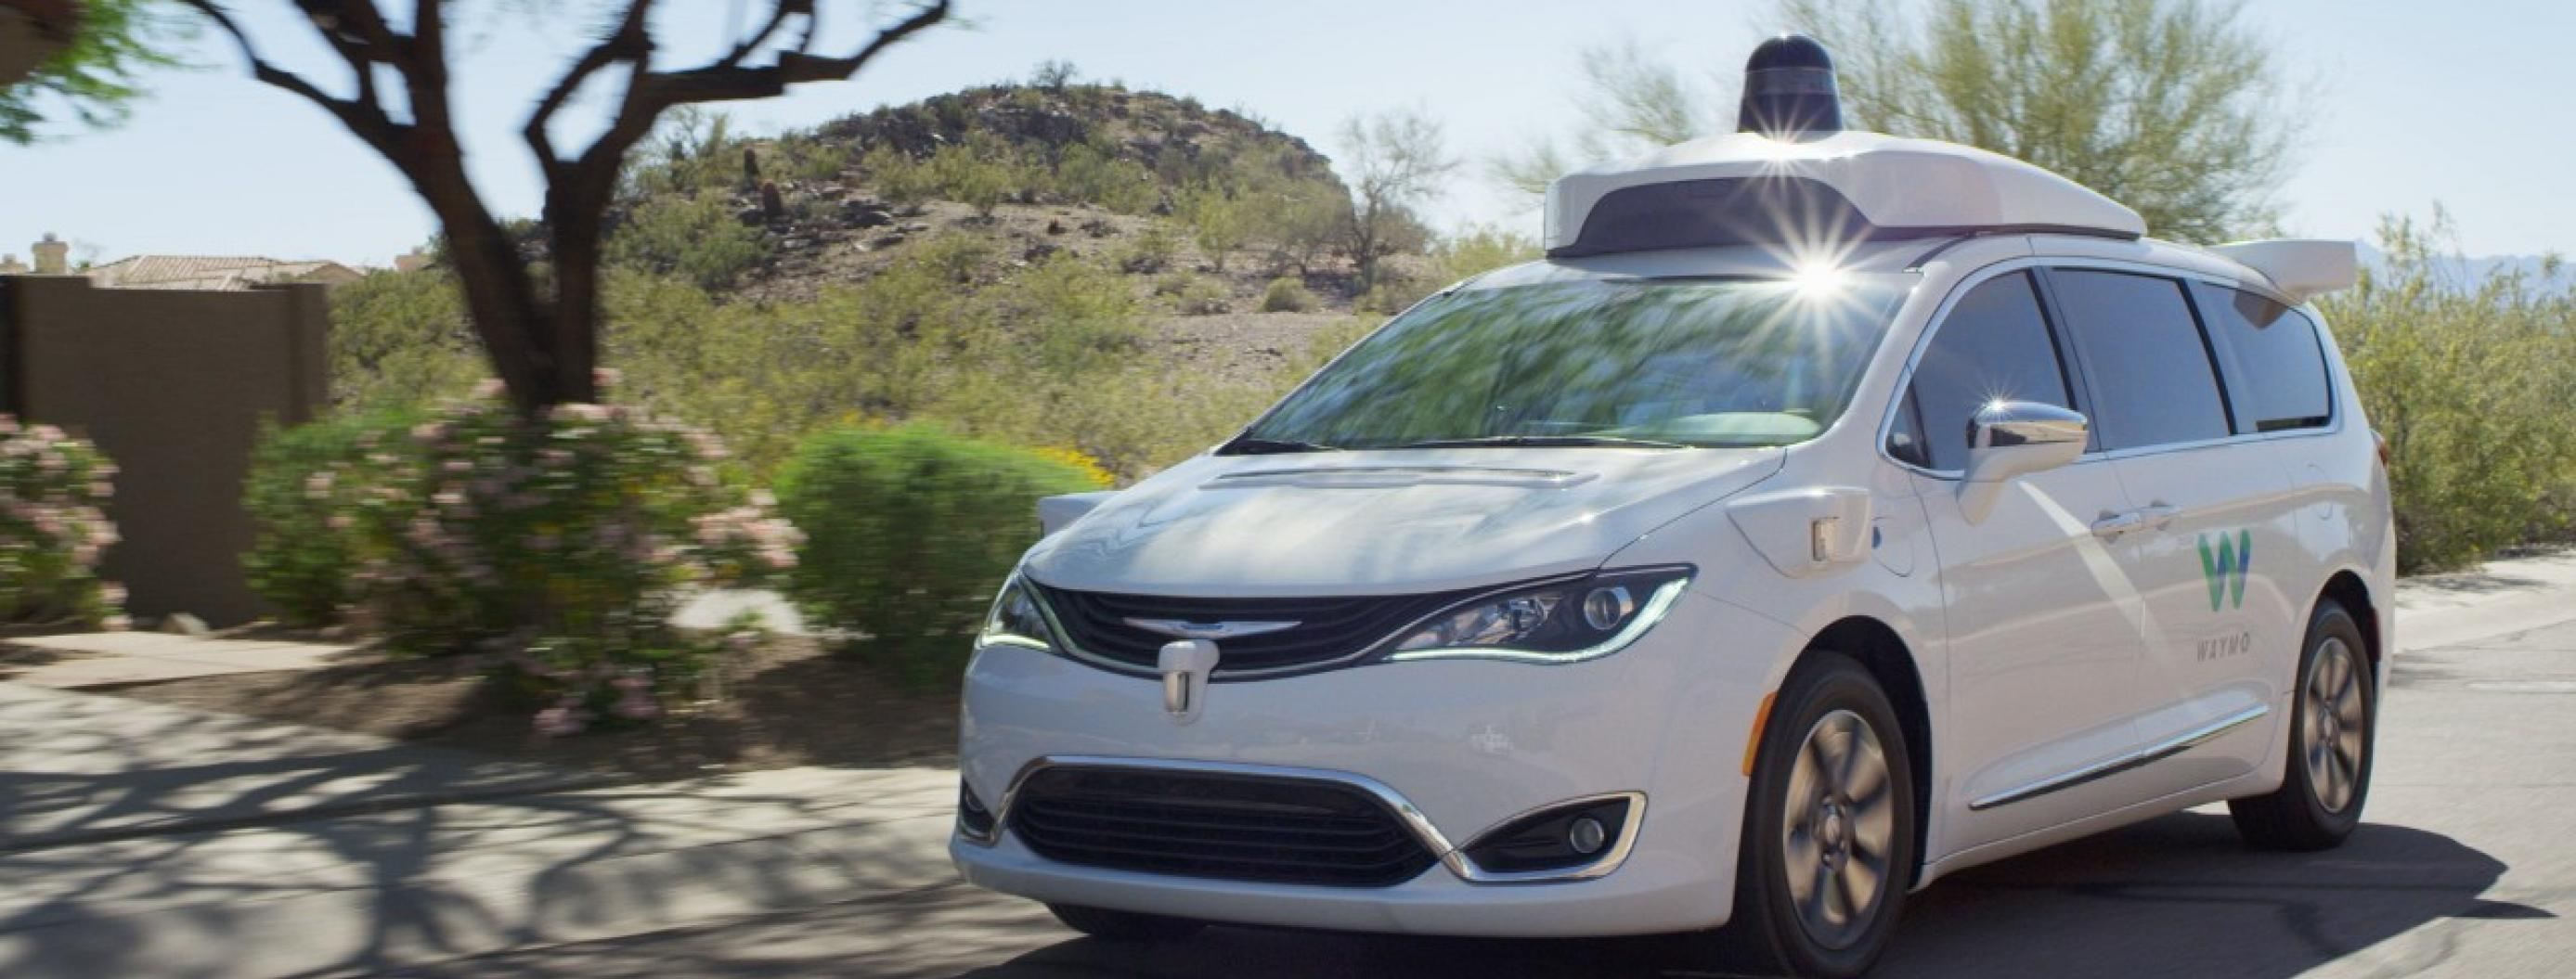 Americans Are Slowly Becoming More Comfortable With Self-Driving Cars